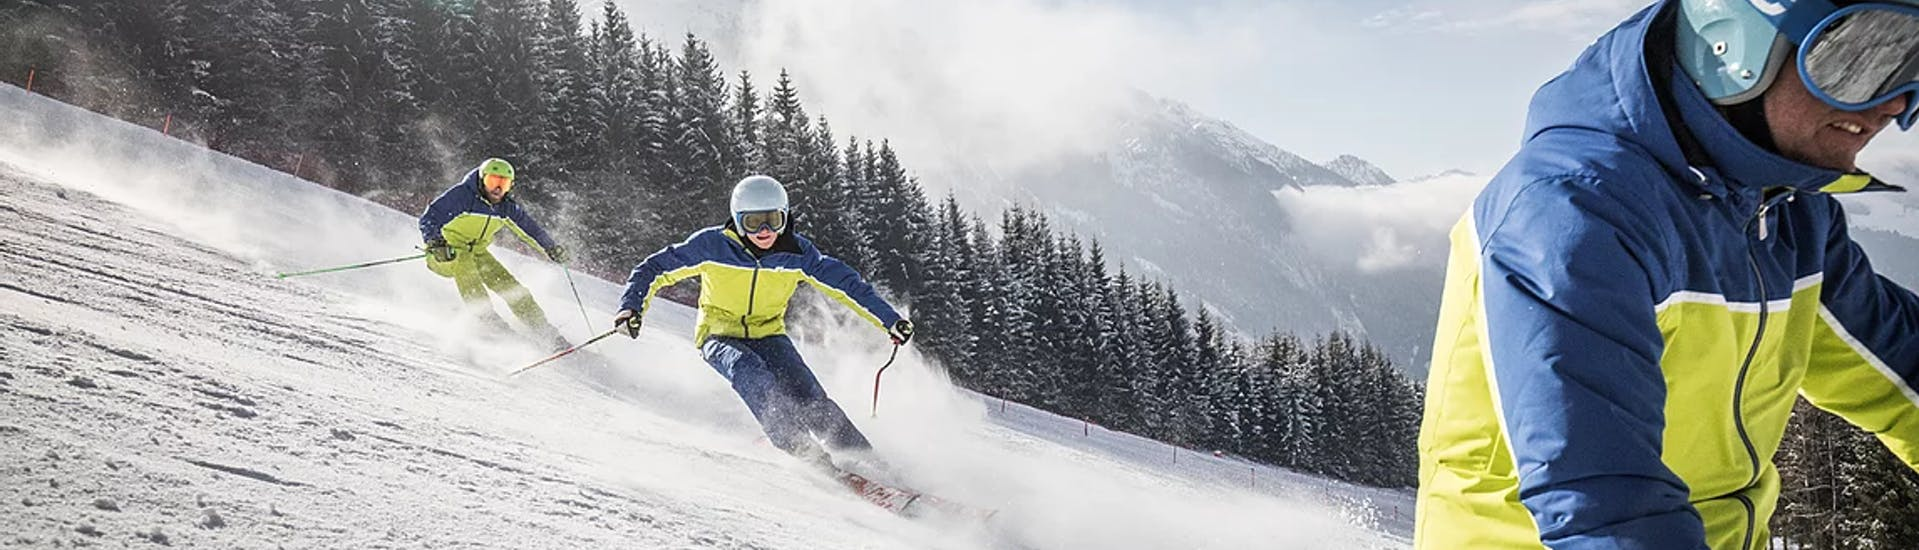 Private Ski Lessons for Adults of All Levels - Full Day